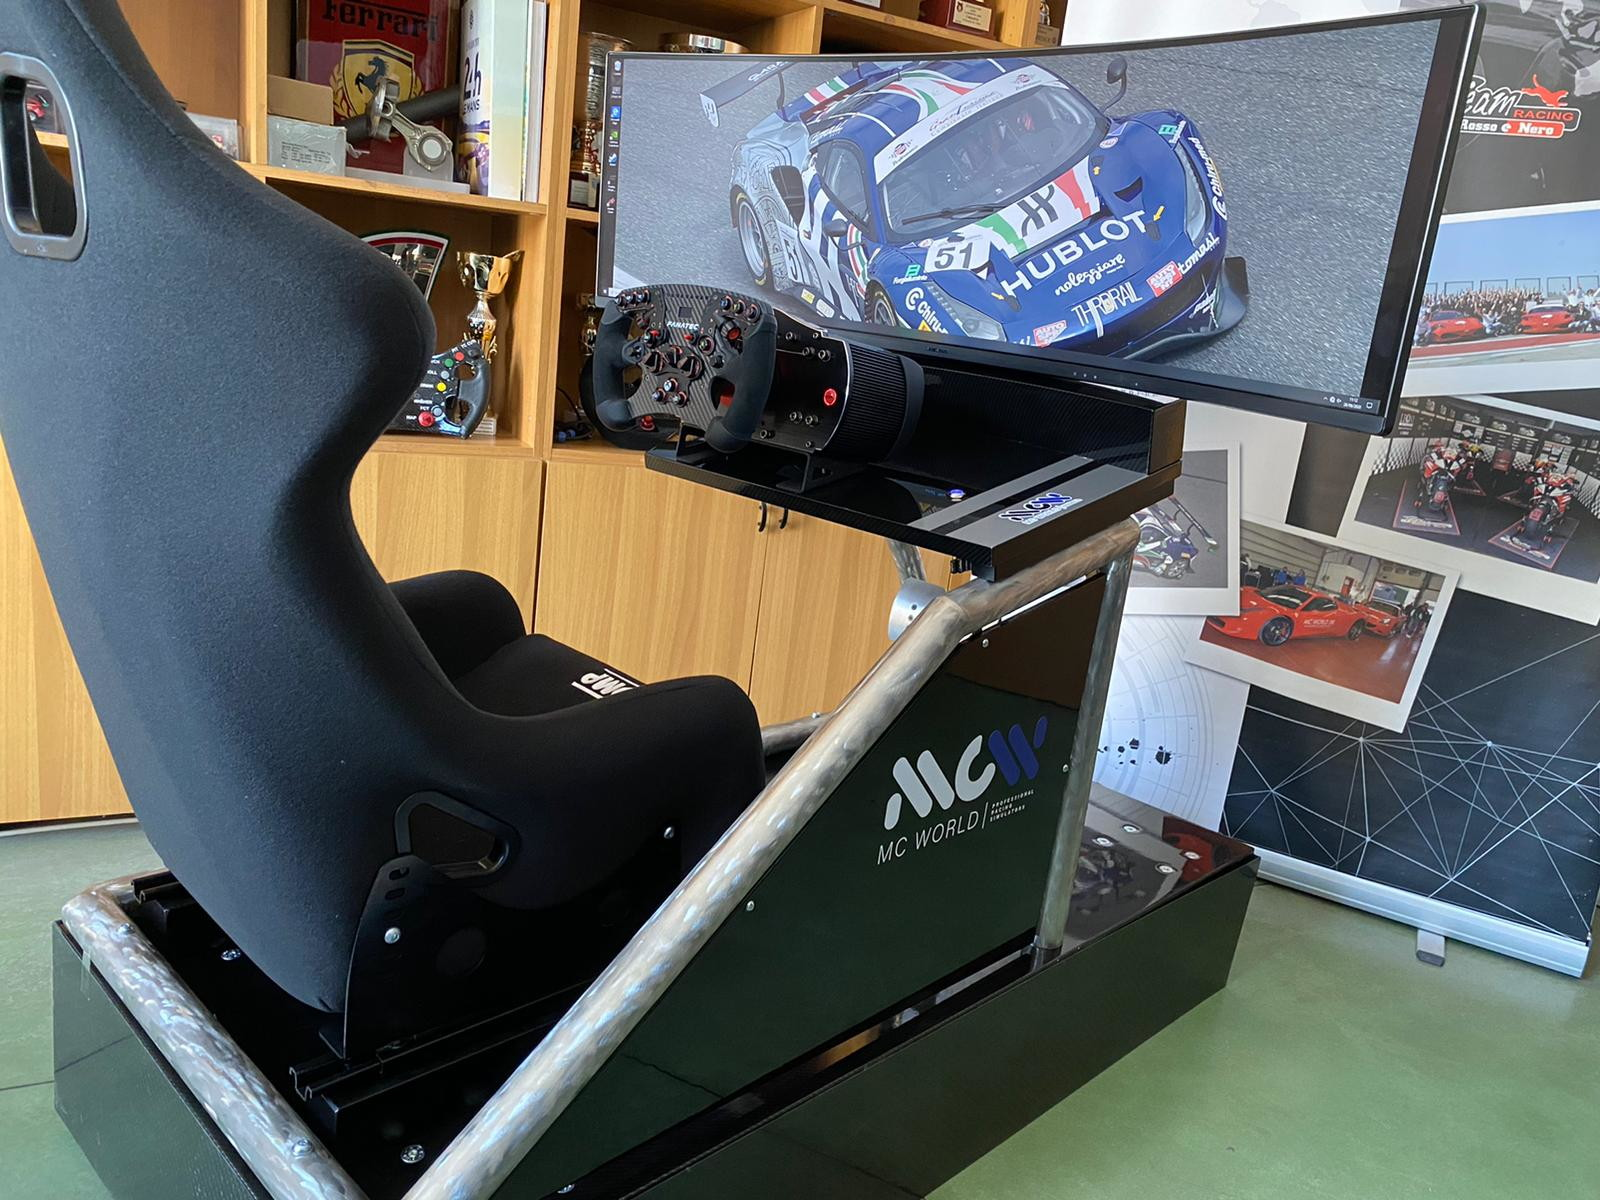 Matteo Cressoni, pilota GT Pro, ha sviluppato due simulatori con la MC World Racing Simulator.<br /><br />